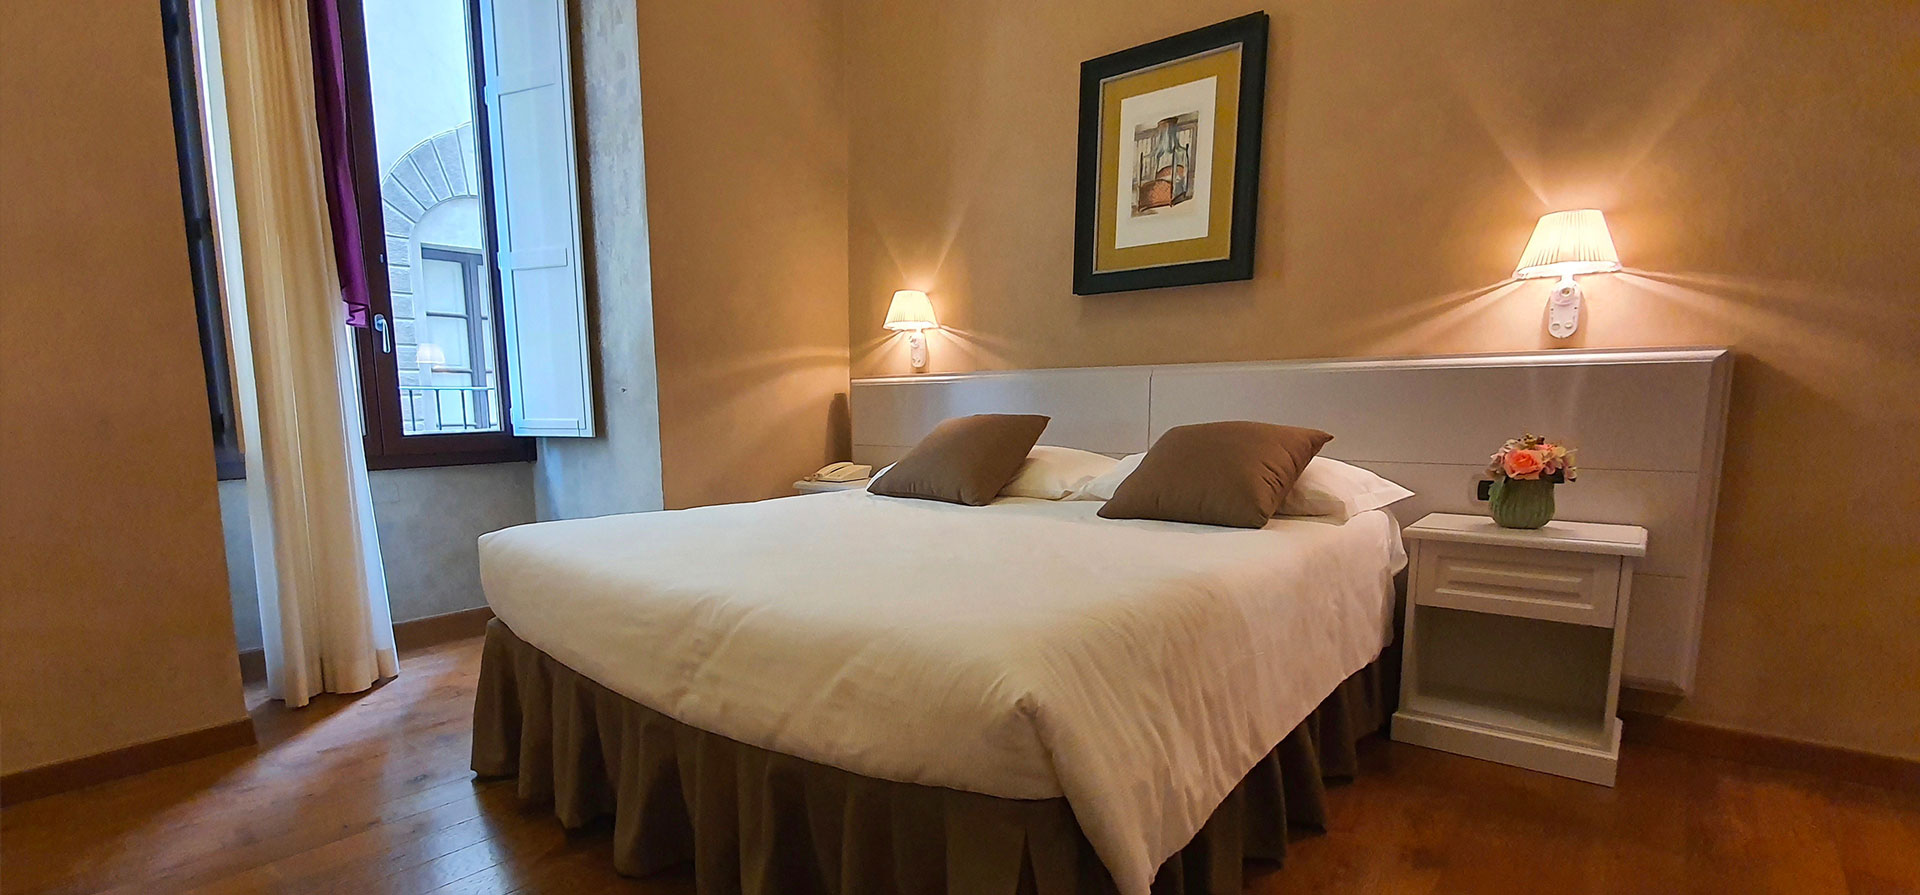 Double Room BnB - La Signoria di Firenze